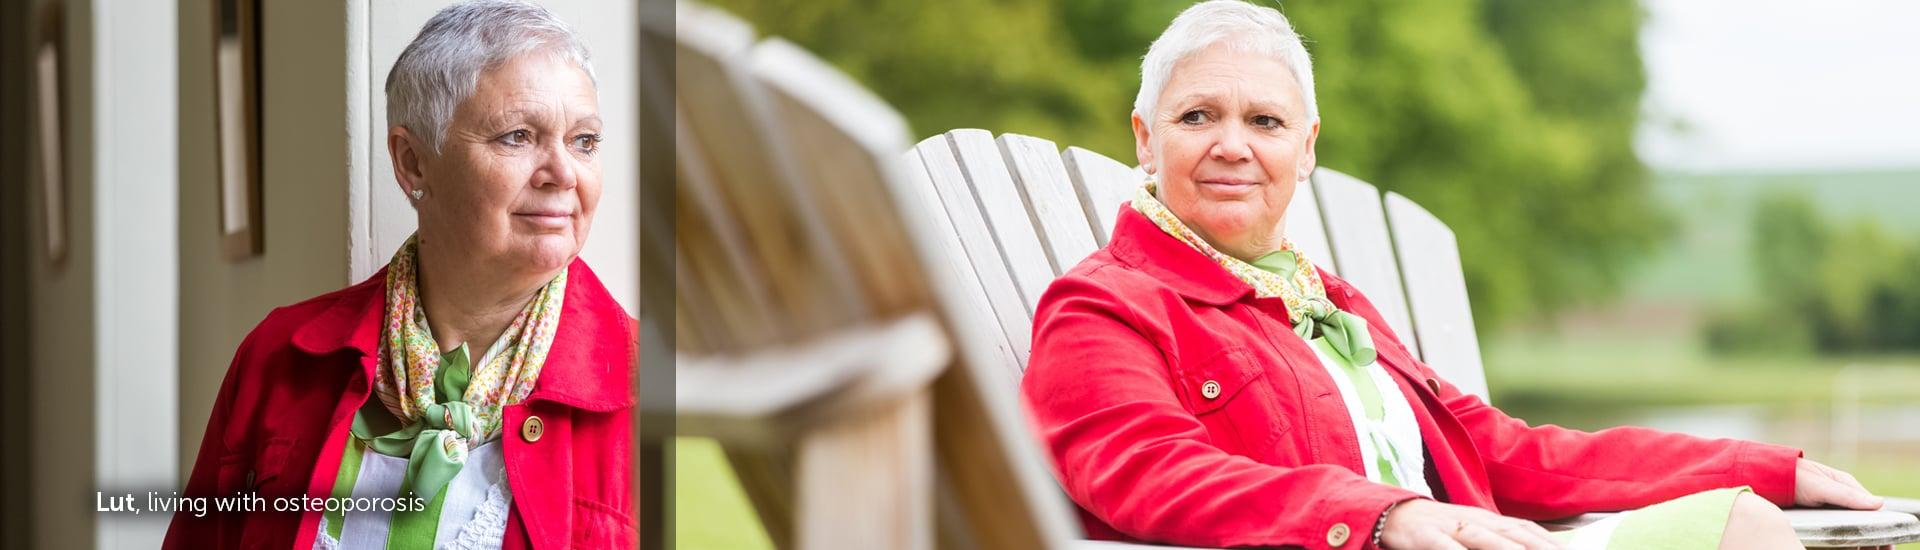 Lut-living-with-osteoporosis